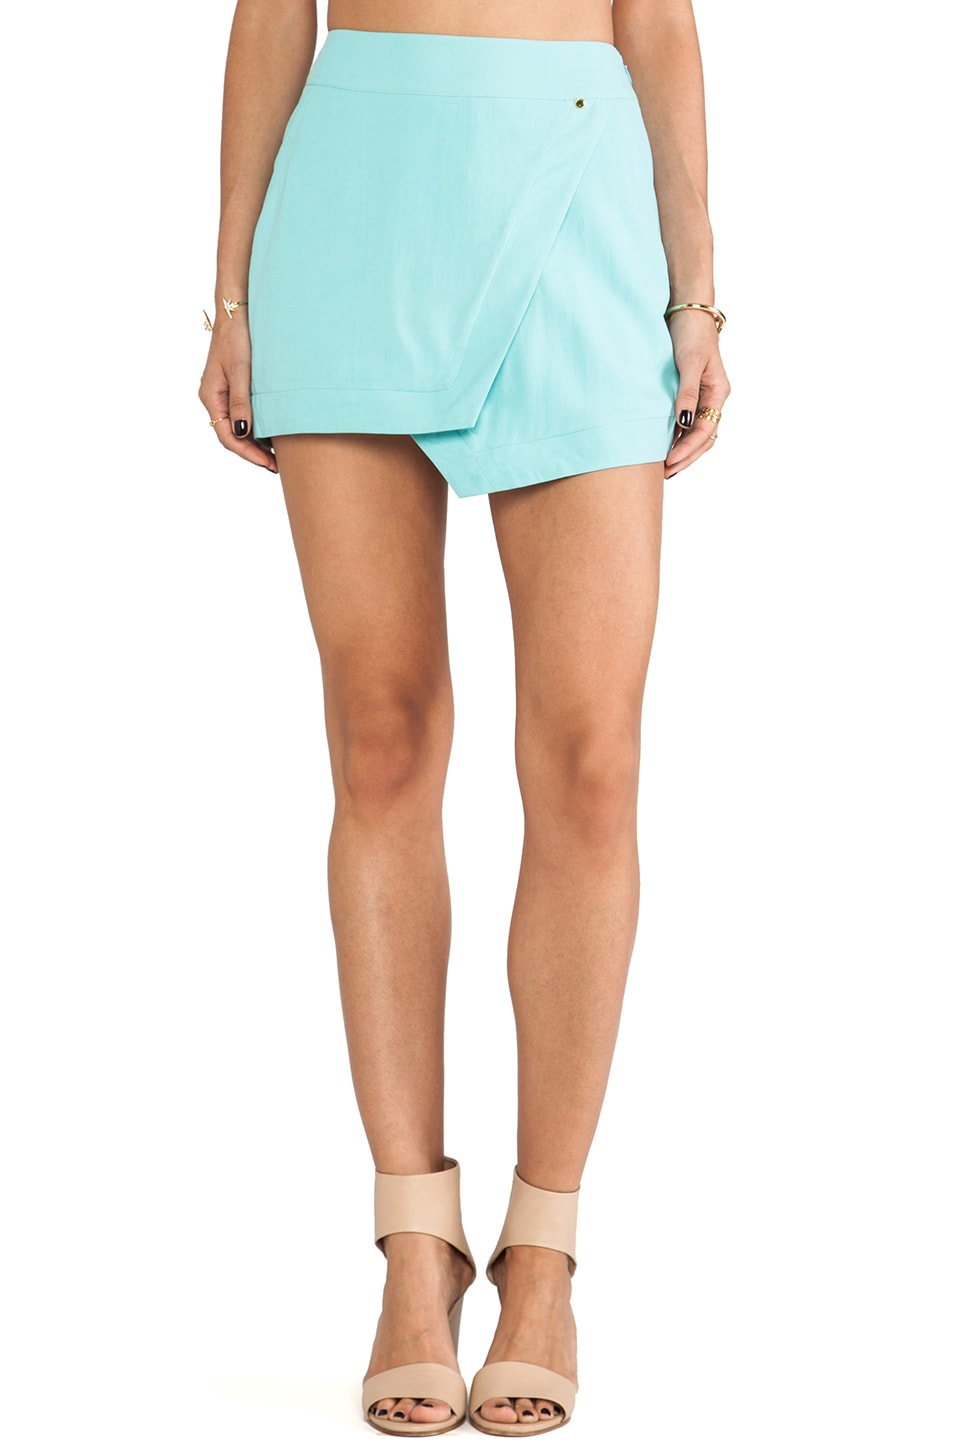 harlyn Wrap Mini Skirt in Aqua